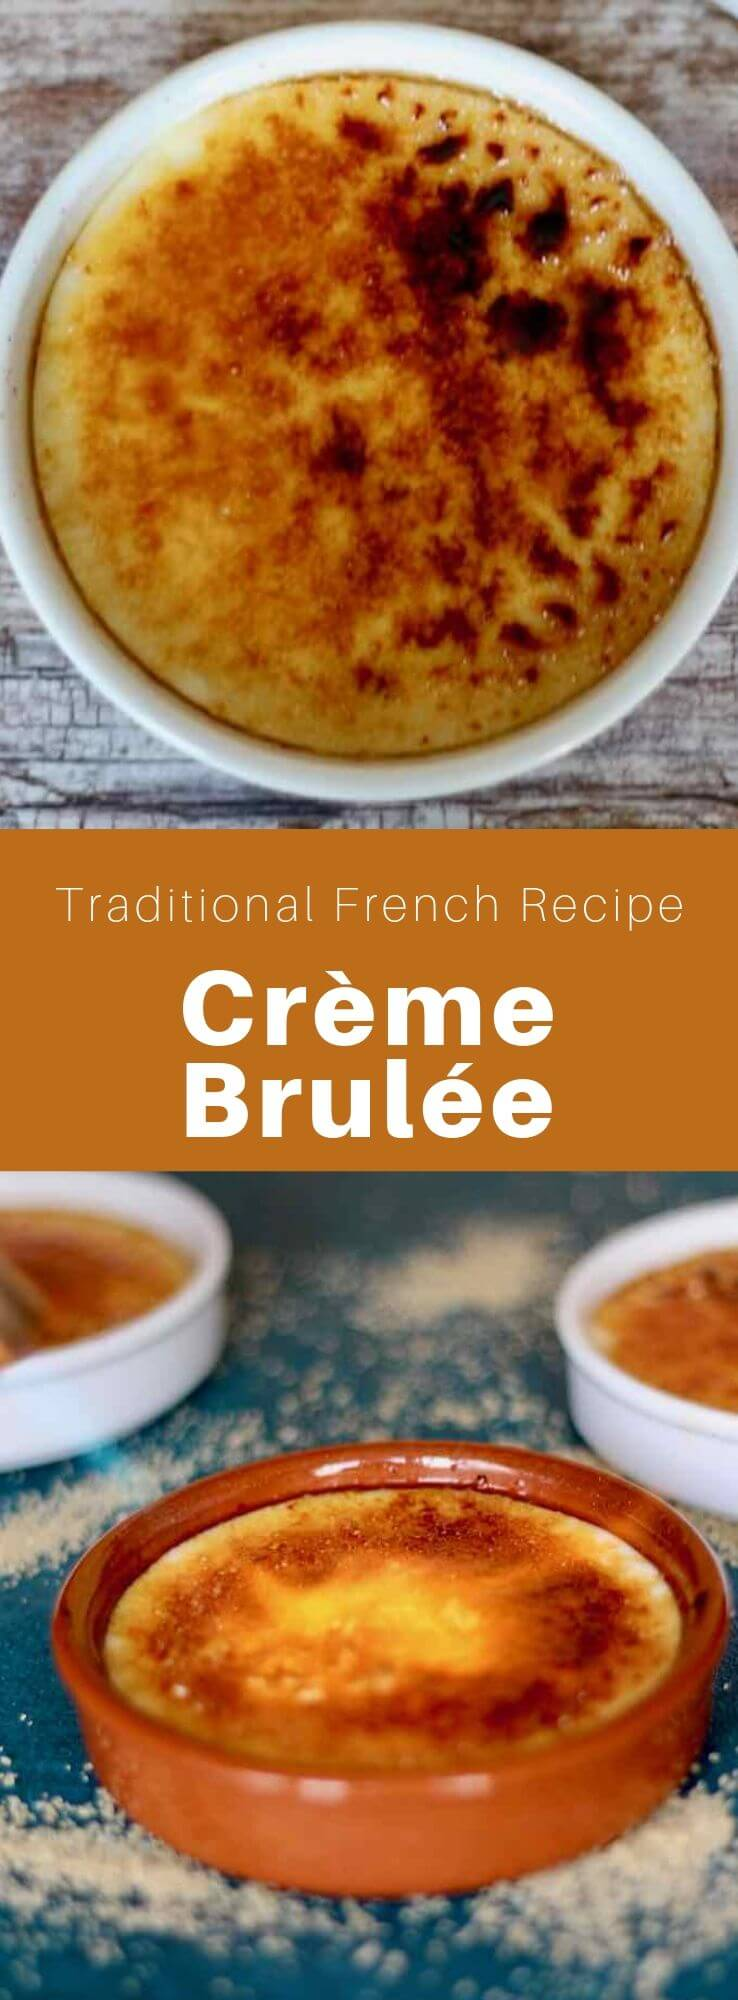 Crème brûlée is a traditional French dessert with a crunchy caramelized crust composed of egg yolks, milk, heavy cream, sugar and vanilla. #French #FrenchDessert #FrenchCuisine #FrenchRecipe #FrenchFood #WorldCuisine #196flavors